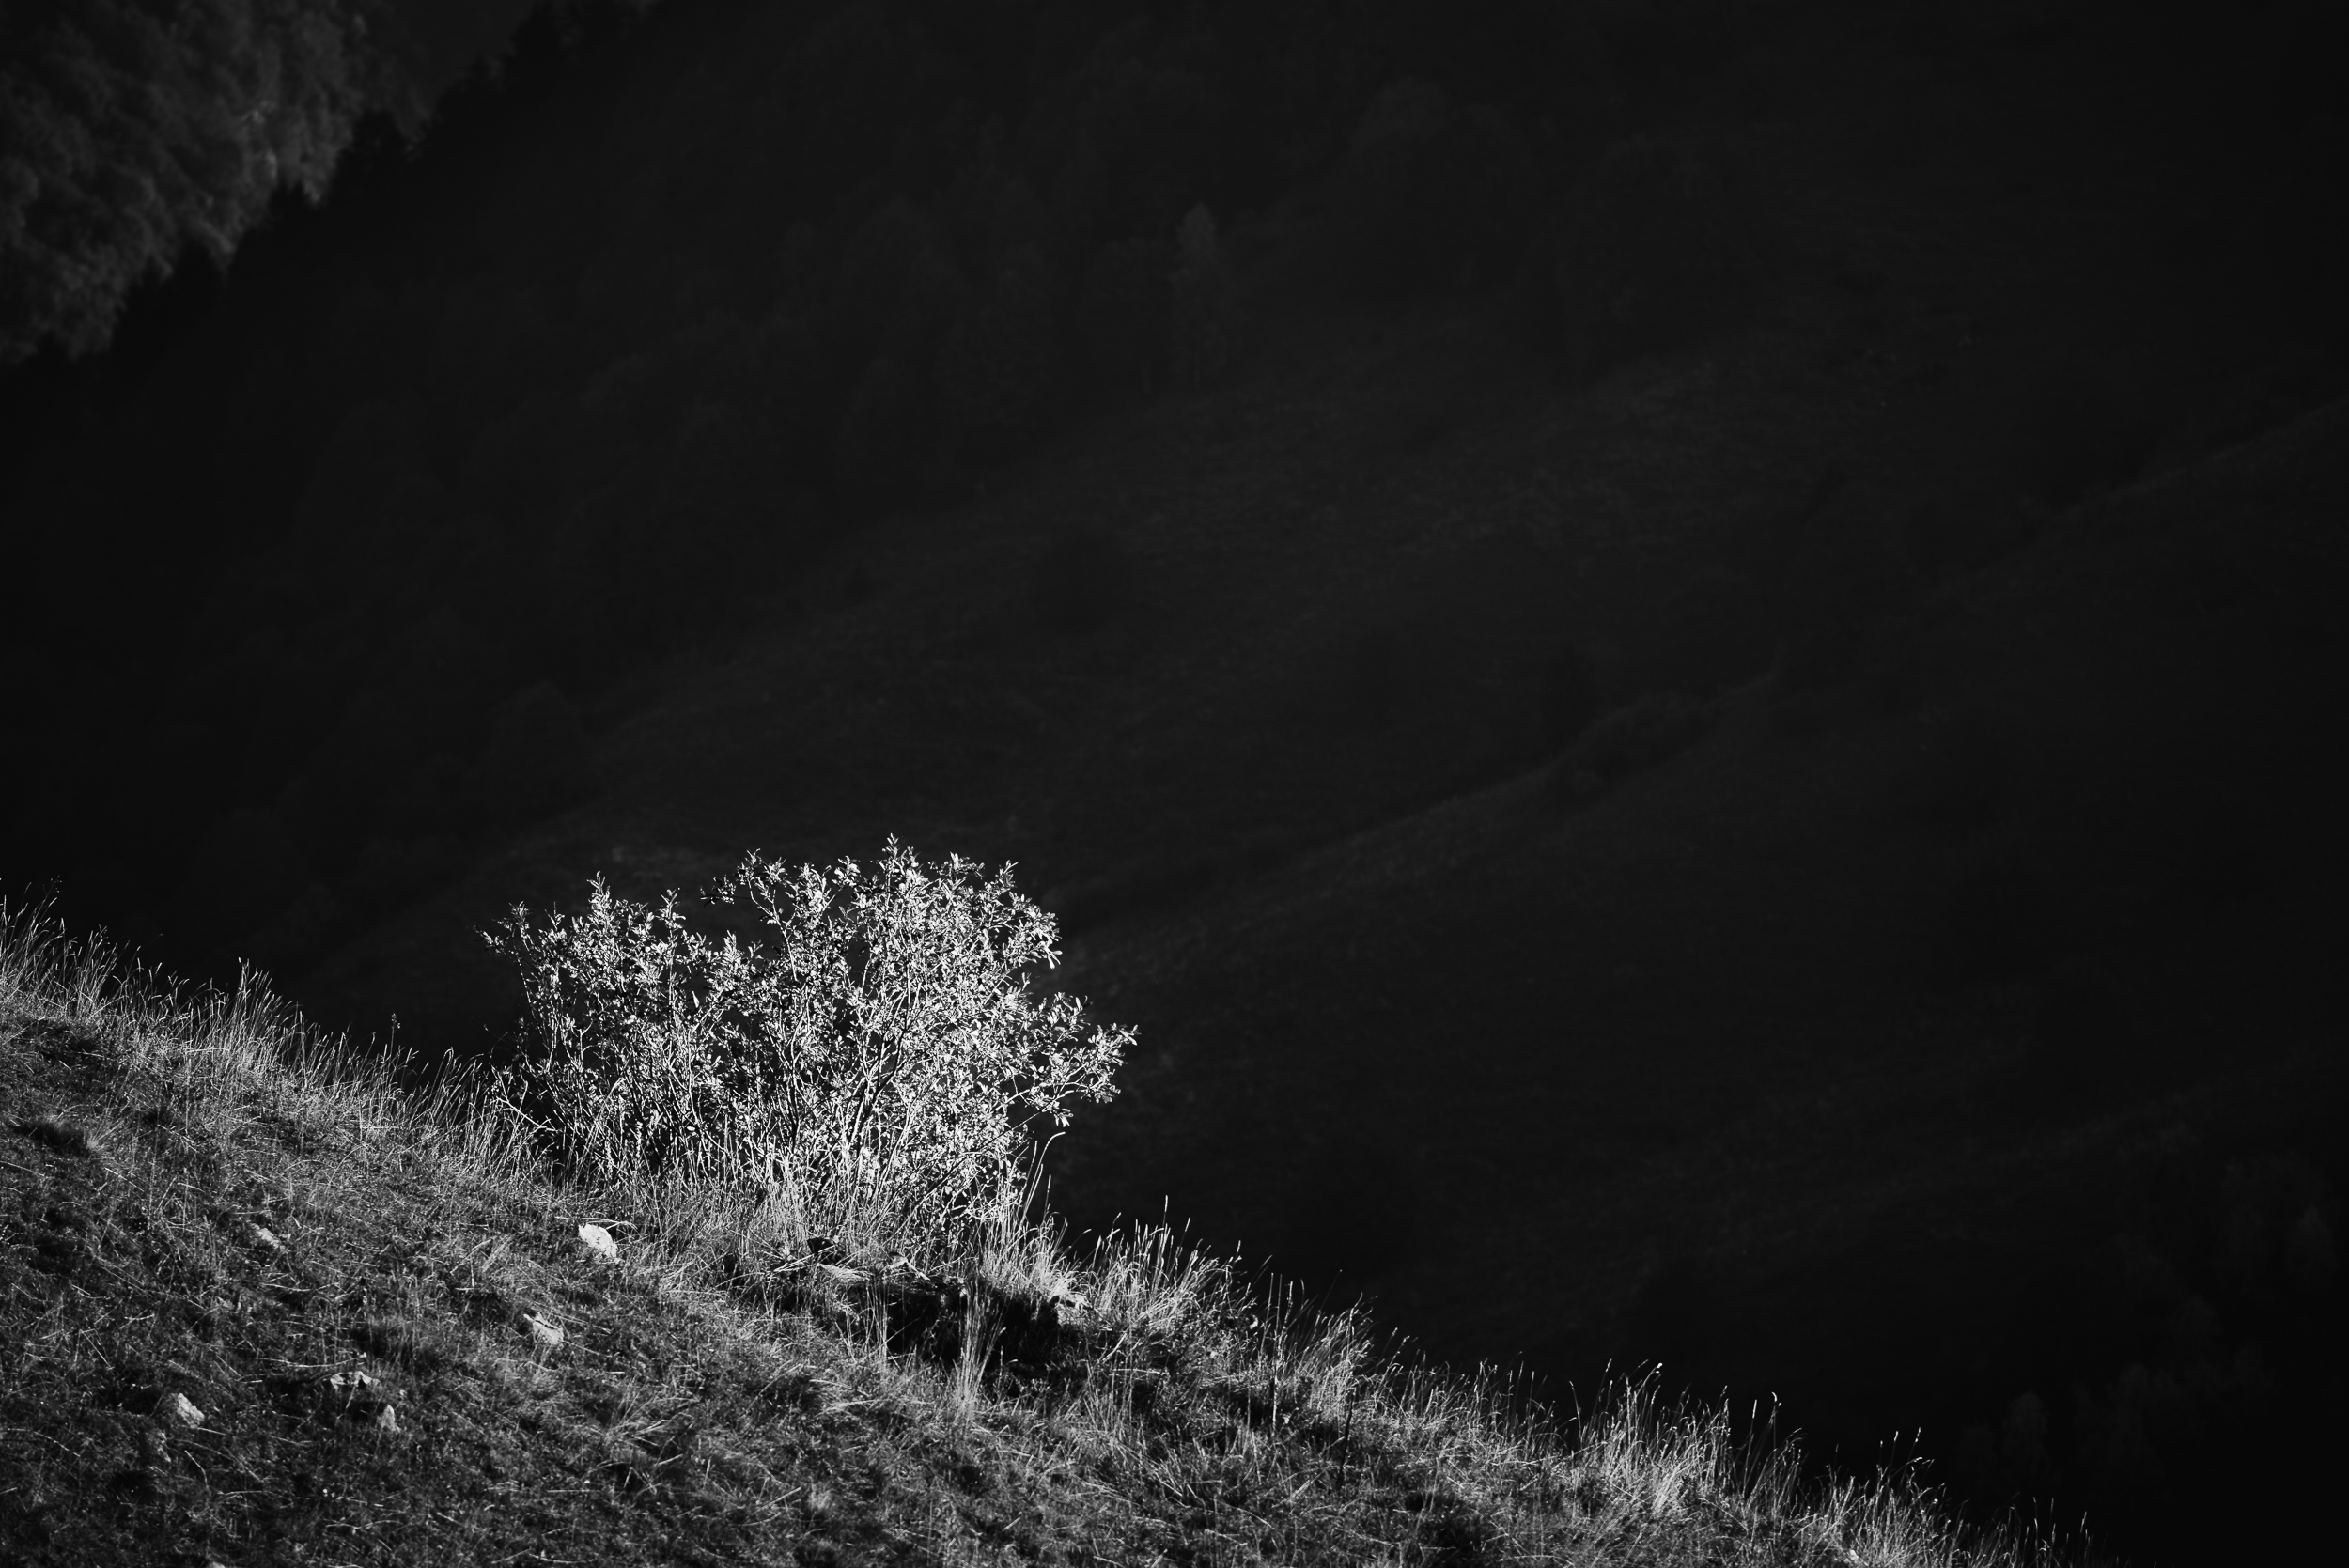 2018-10-20_Web_6084_Tree on a hill contrast with back shadow.jpg